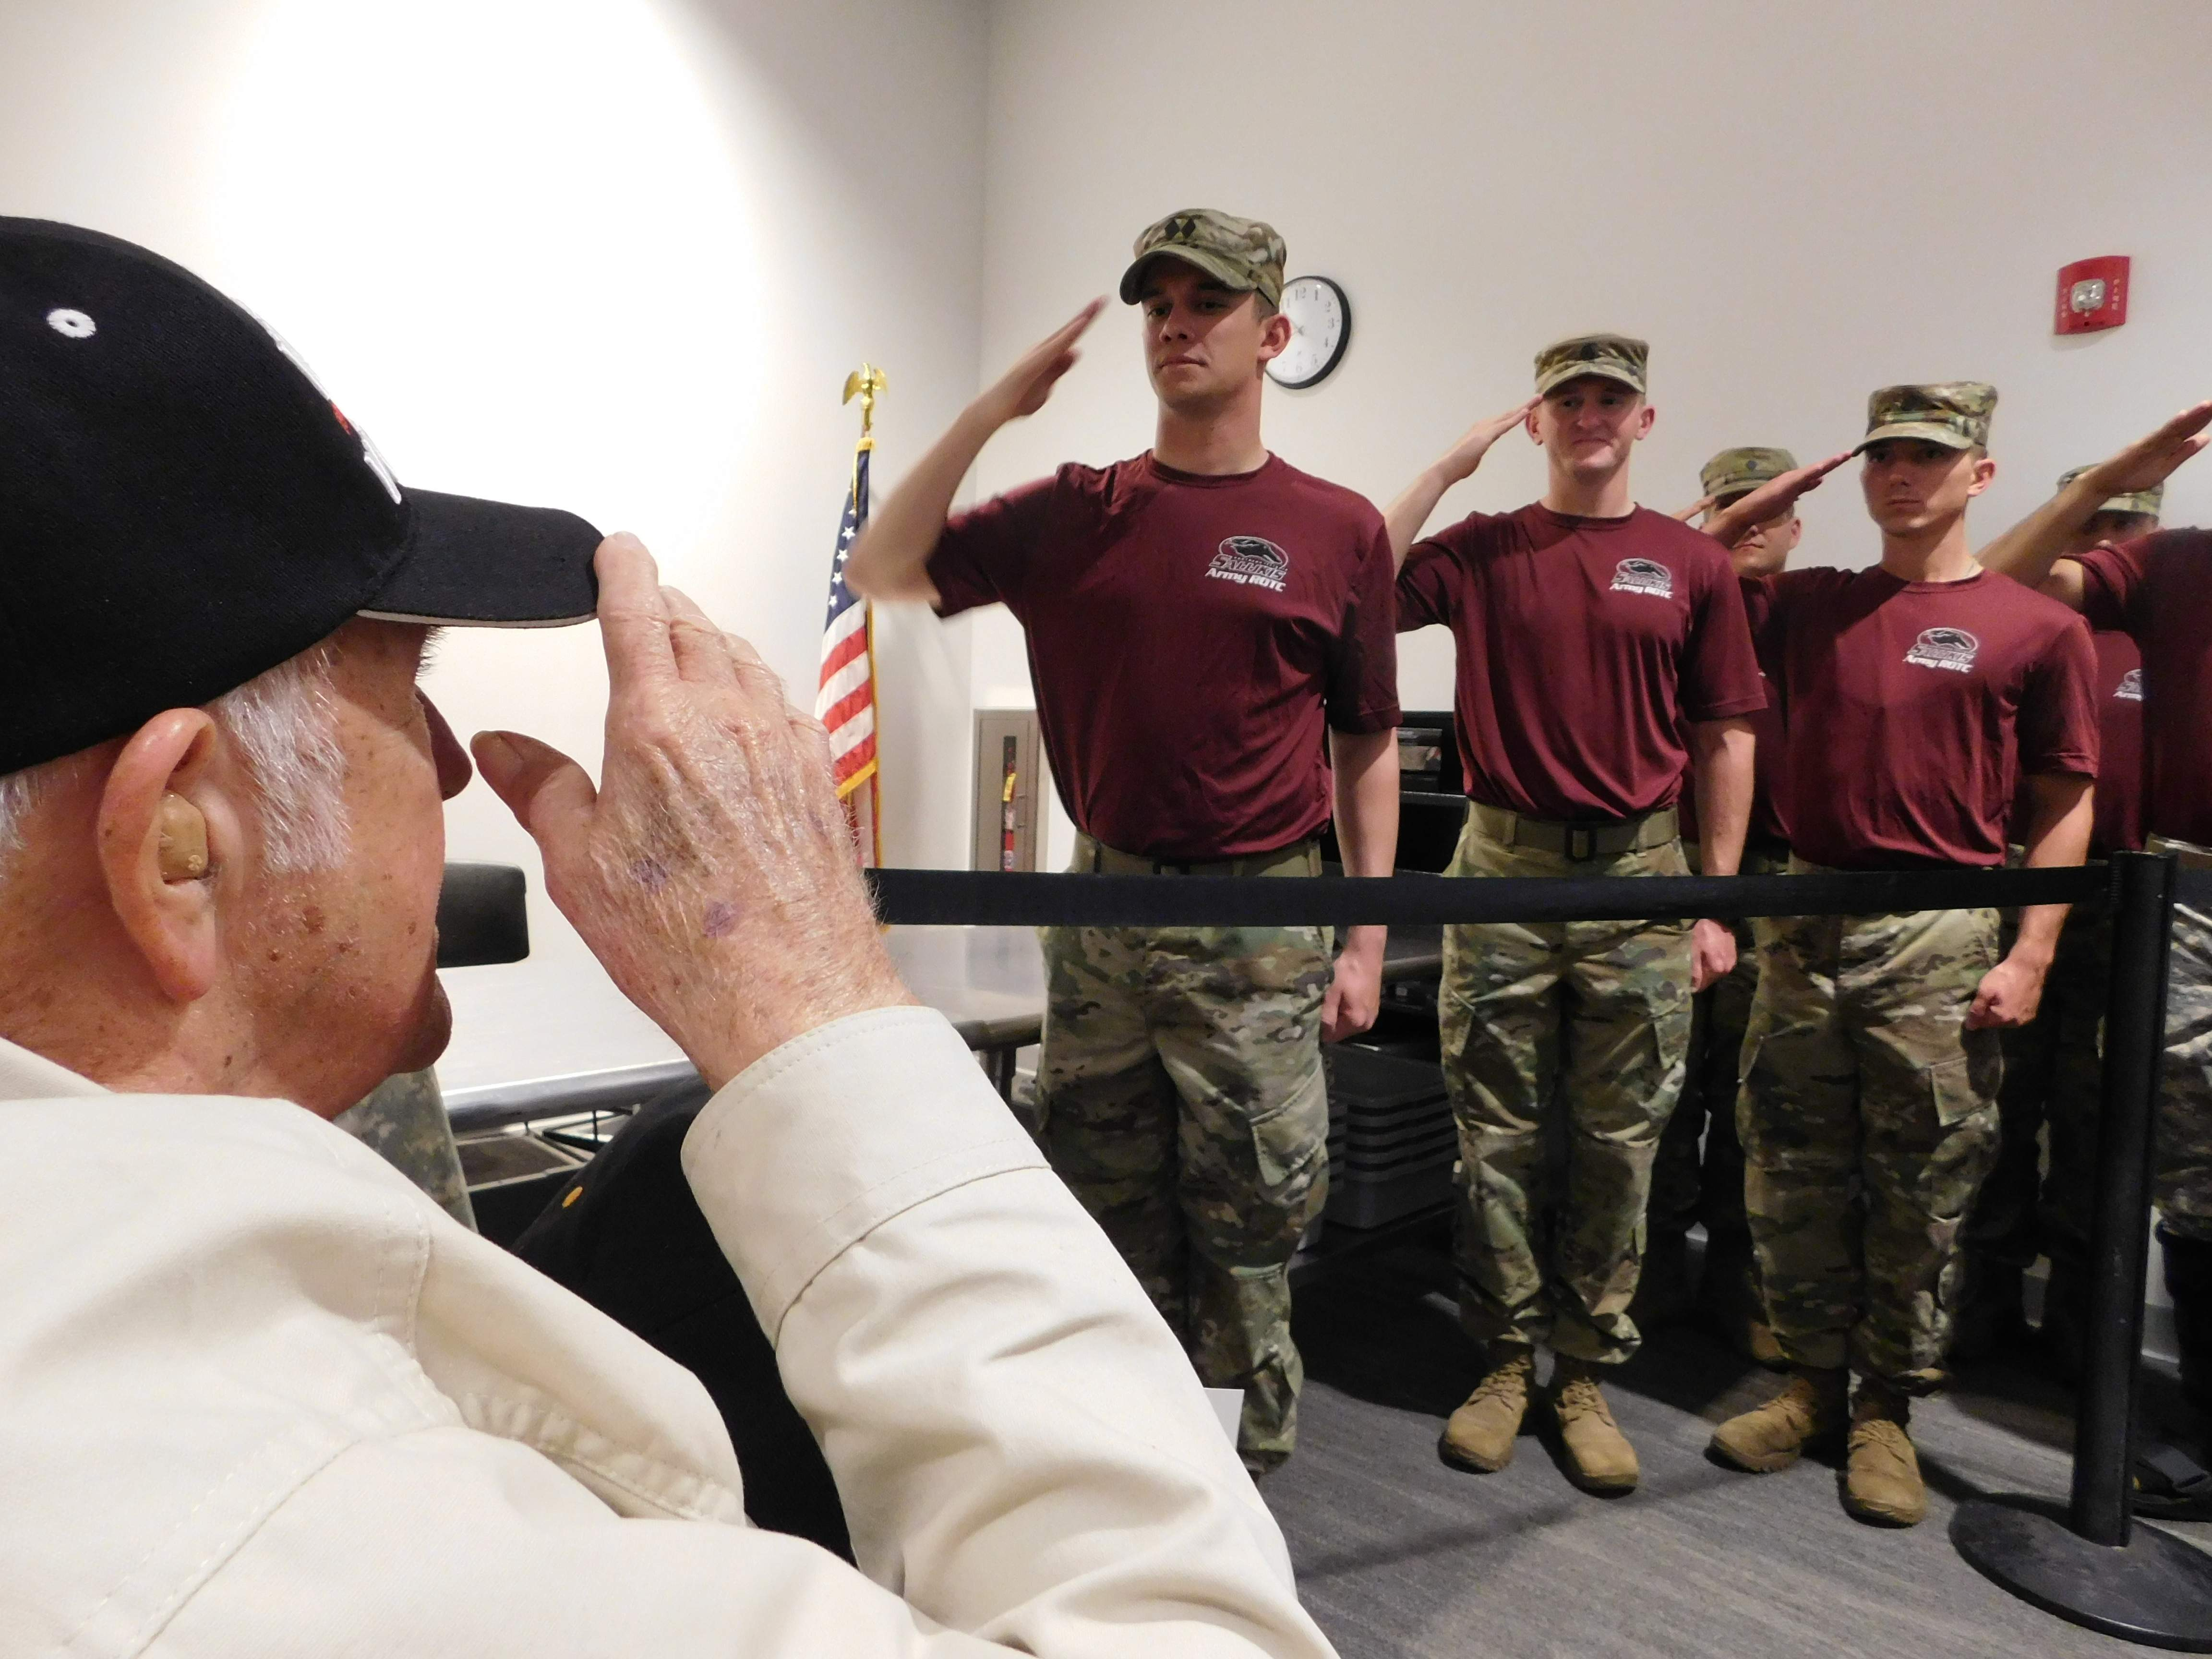 William Thomas of Benton returned the salute to members of SIU's ROTC as he made his way through the crowd upon returning from his day in Washington, D.C. on the April 2017 Honor Flight.